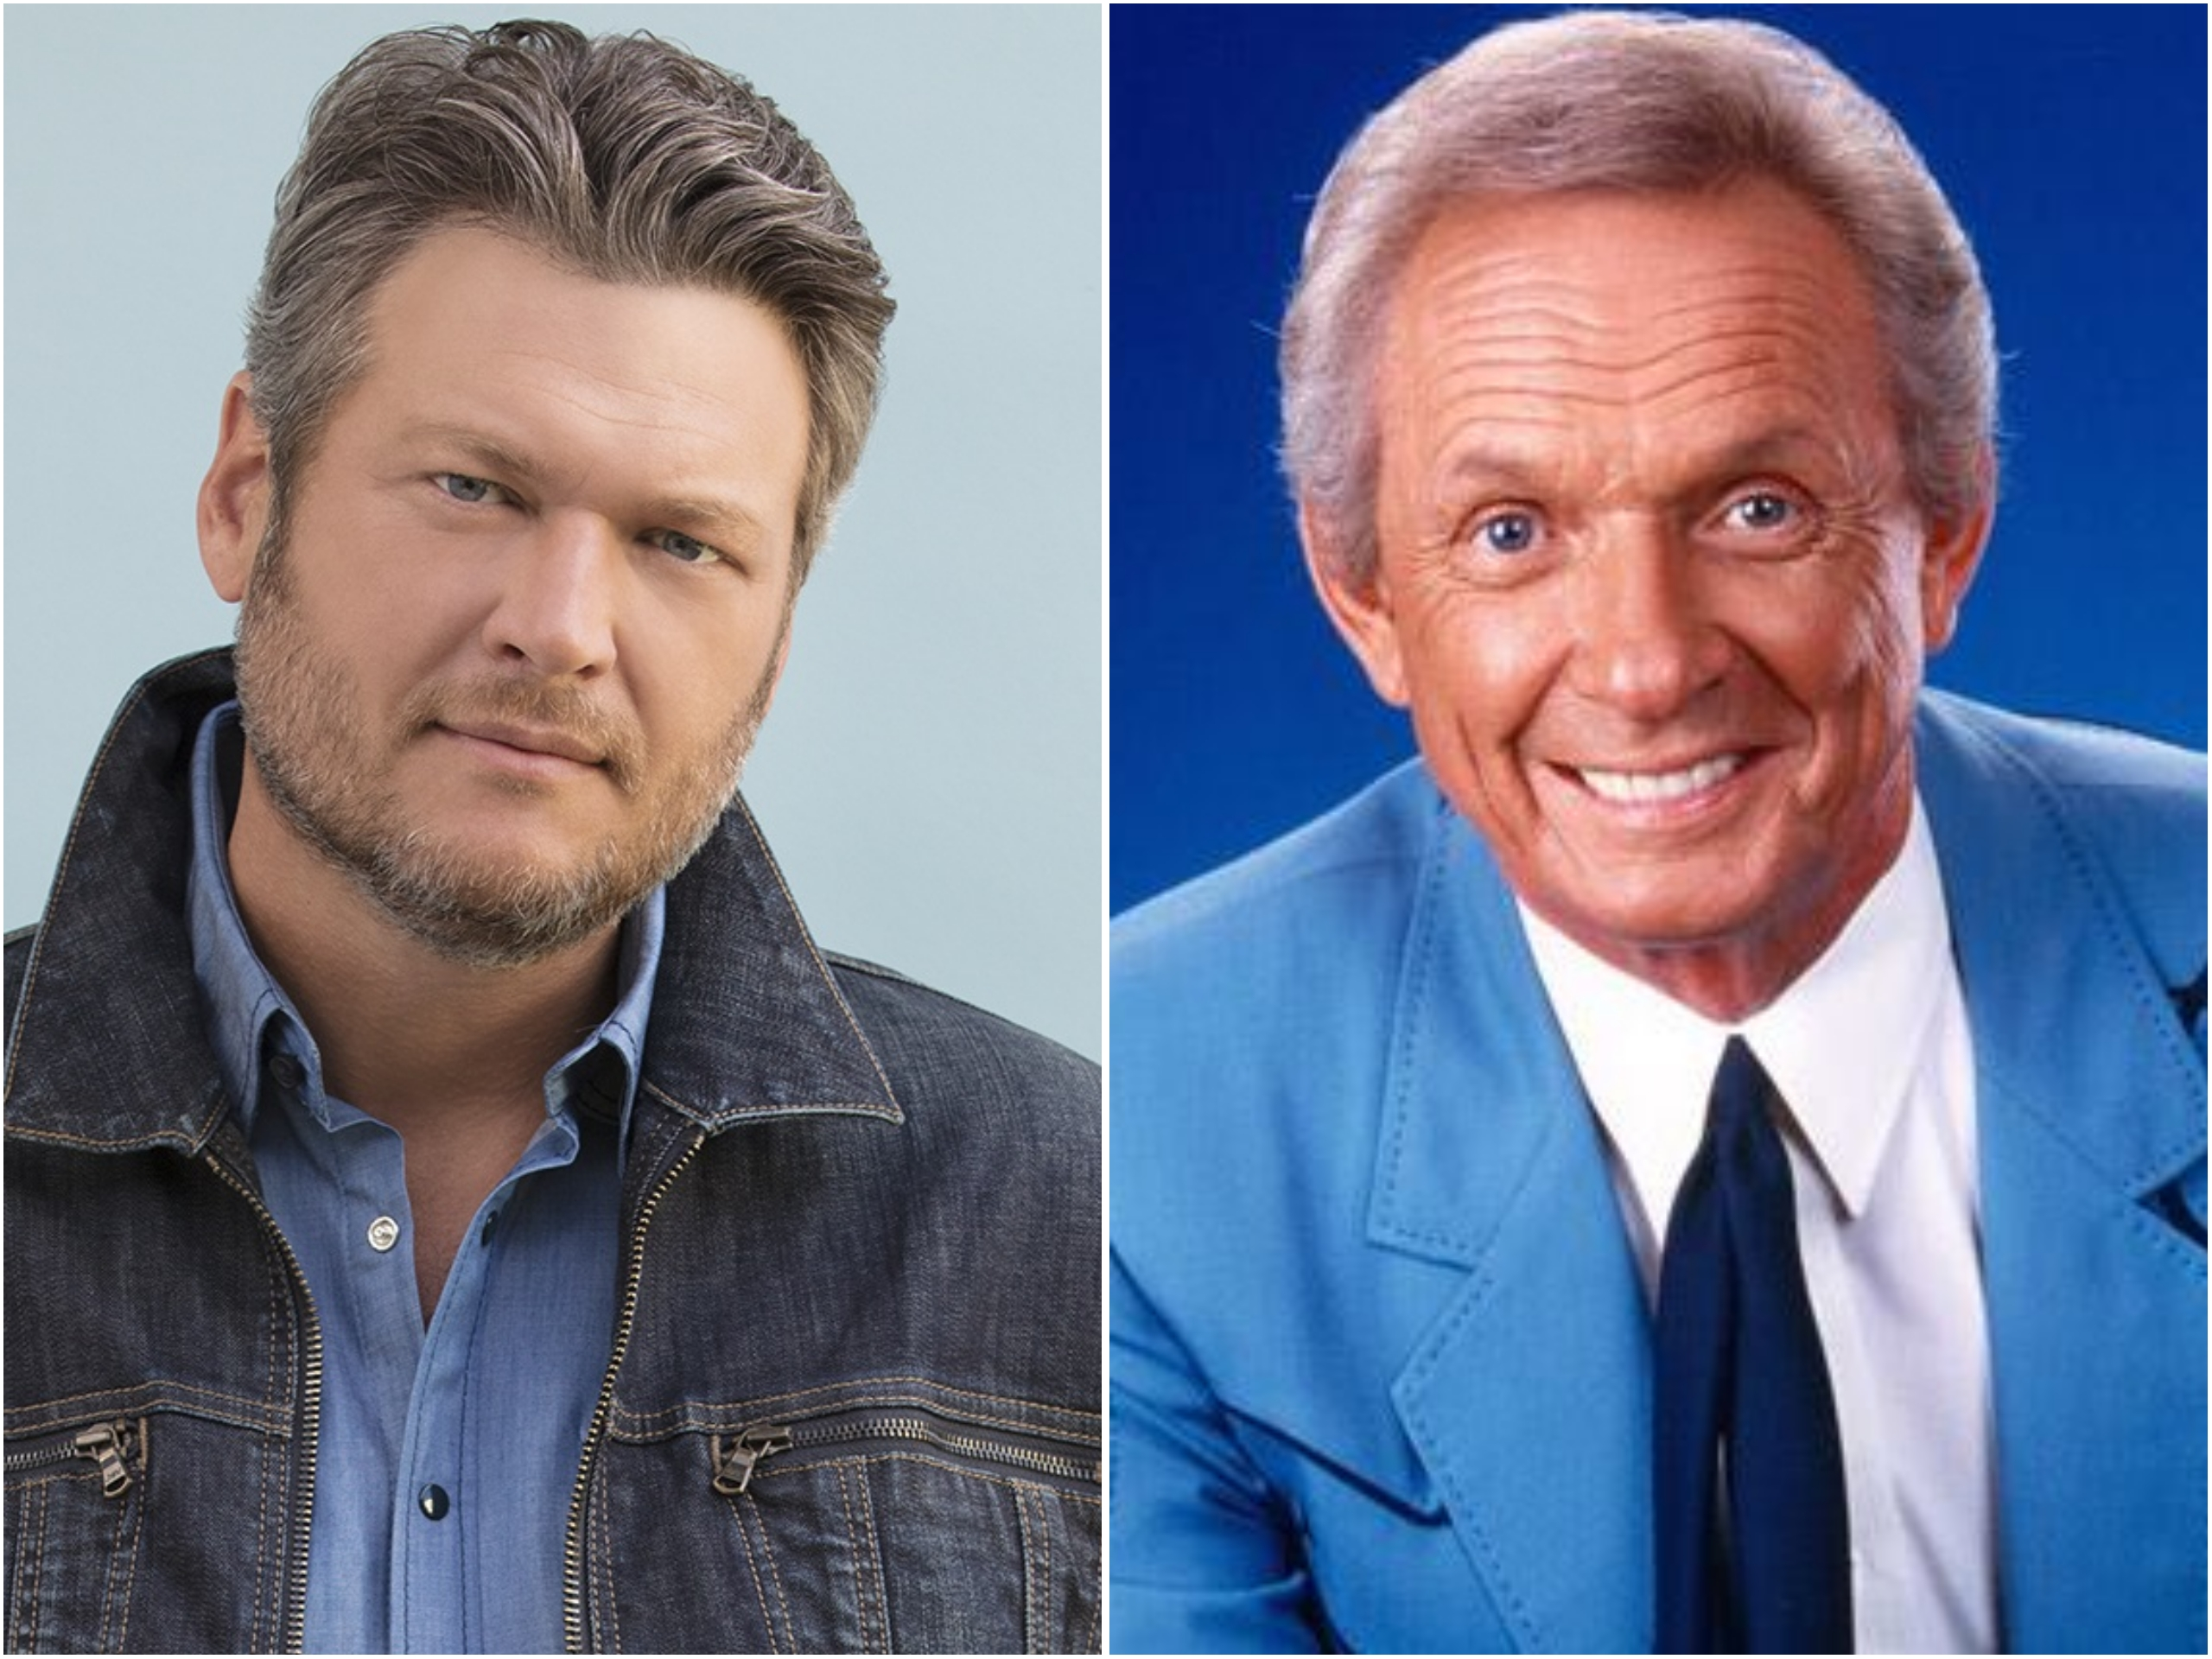 Blake Shelton Shares Touching Memories of the Late Mel Tillis